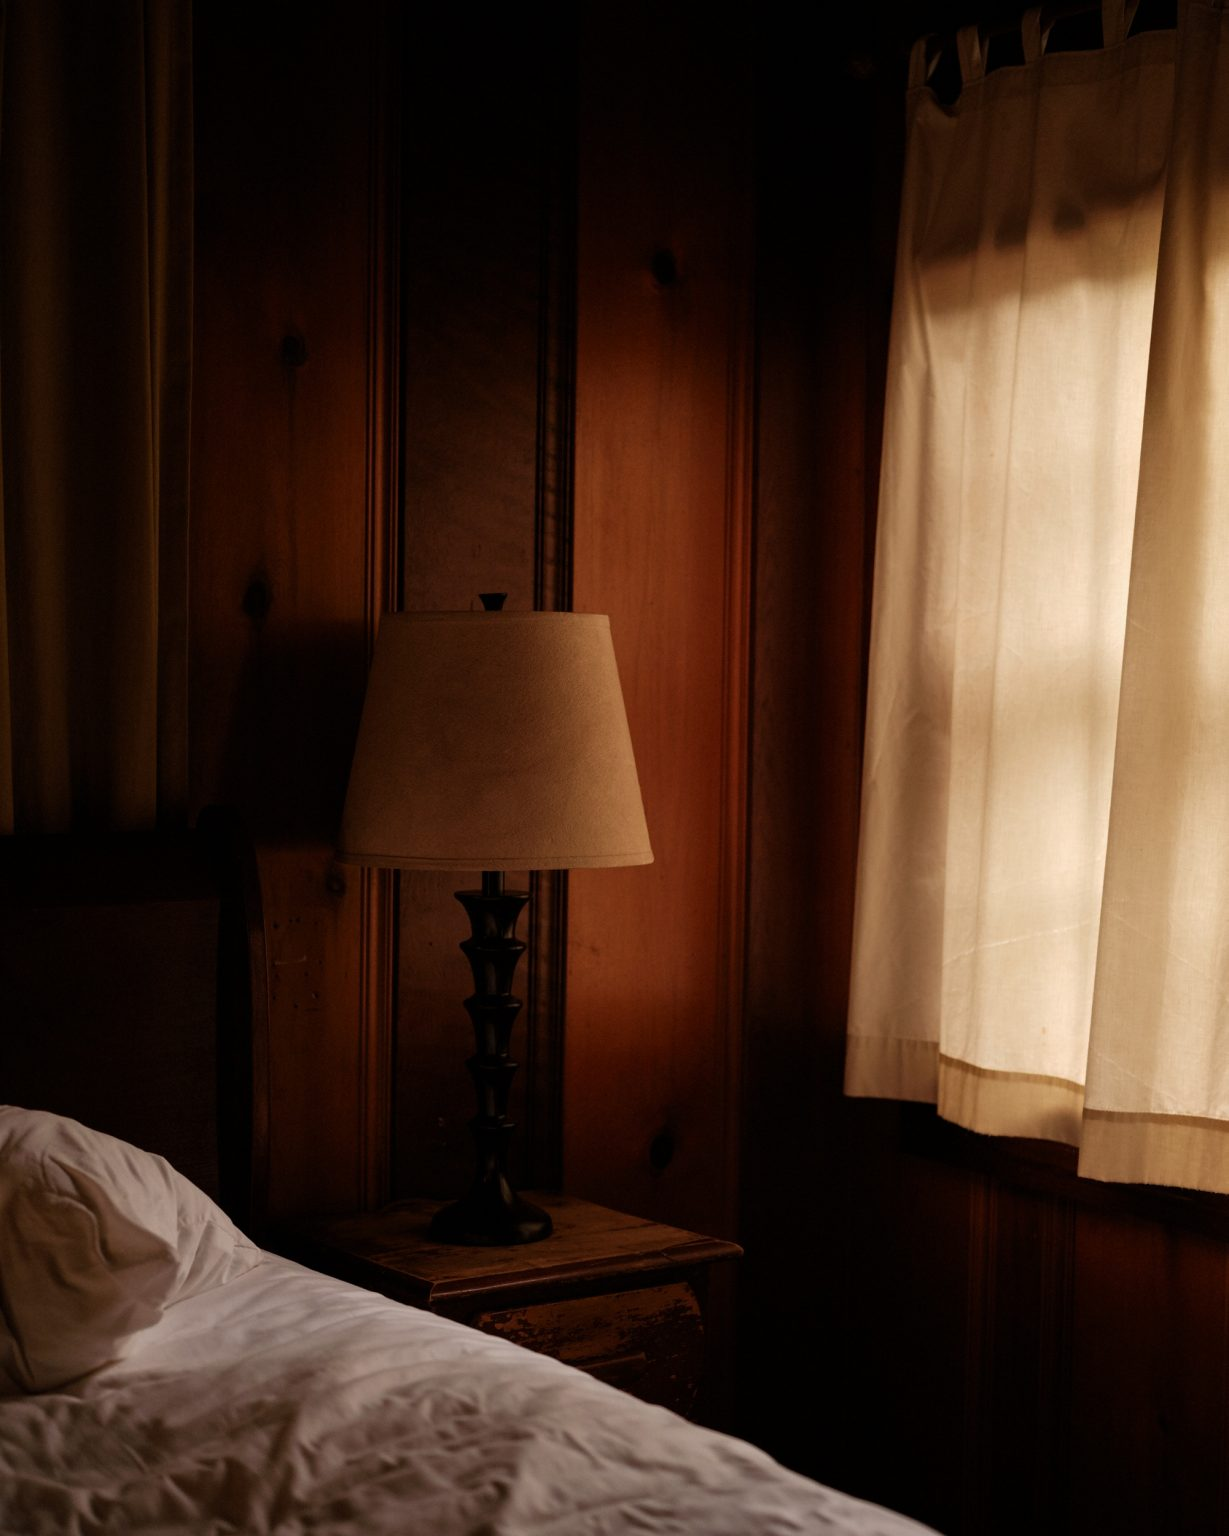 bed-and-window